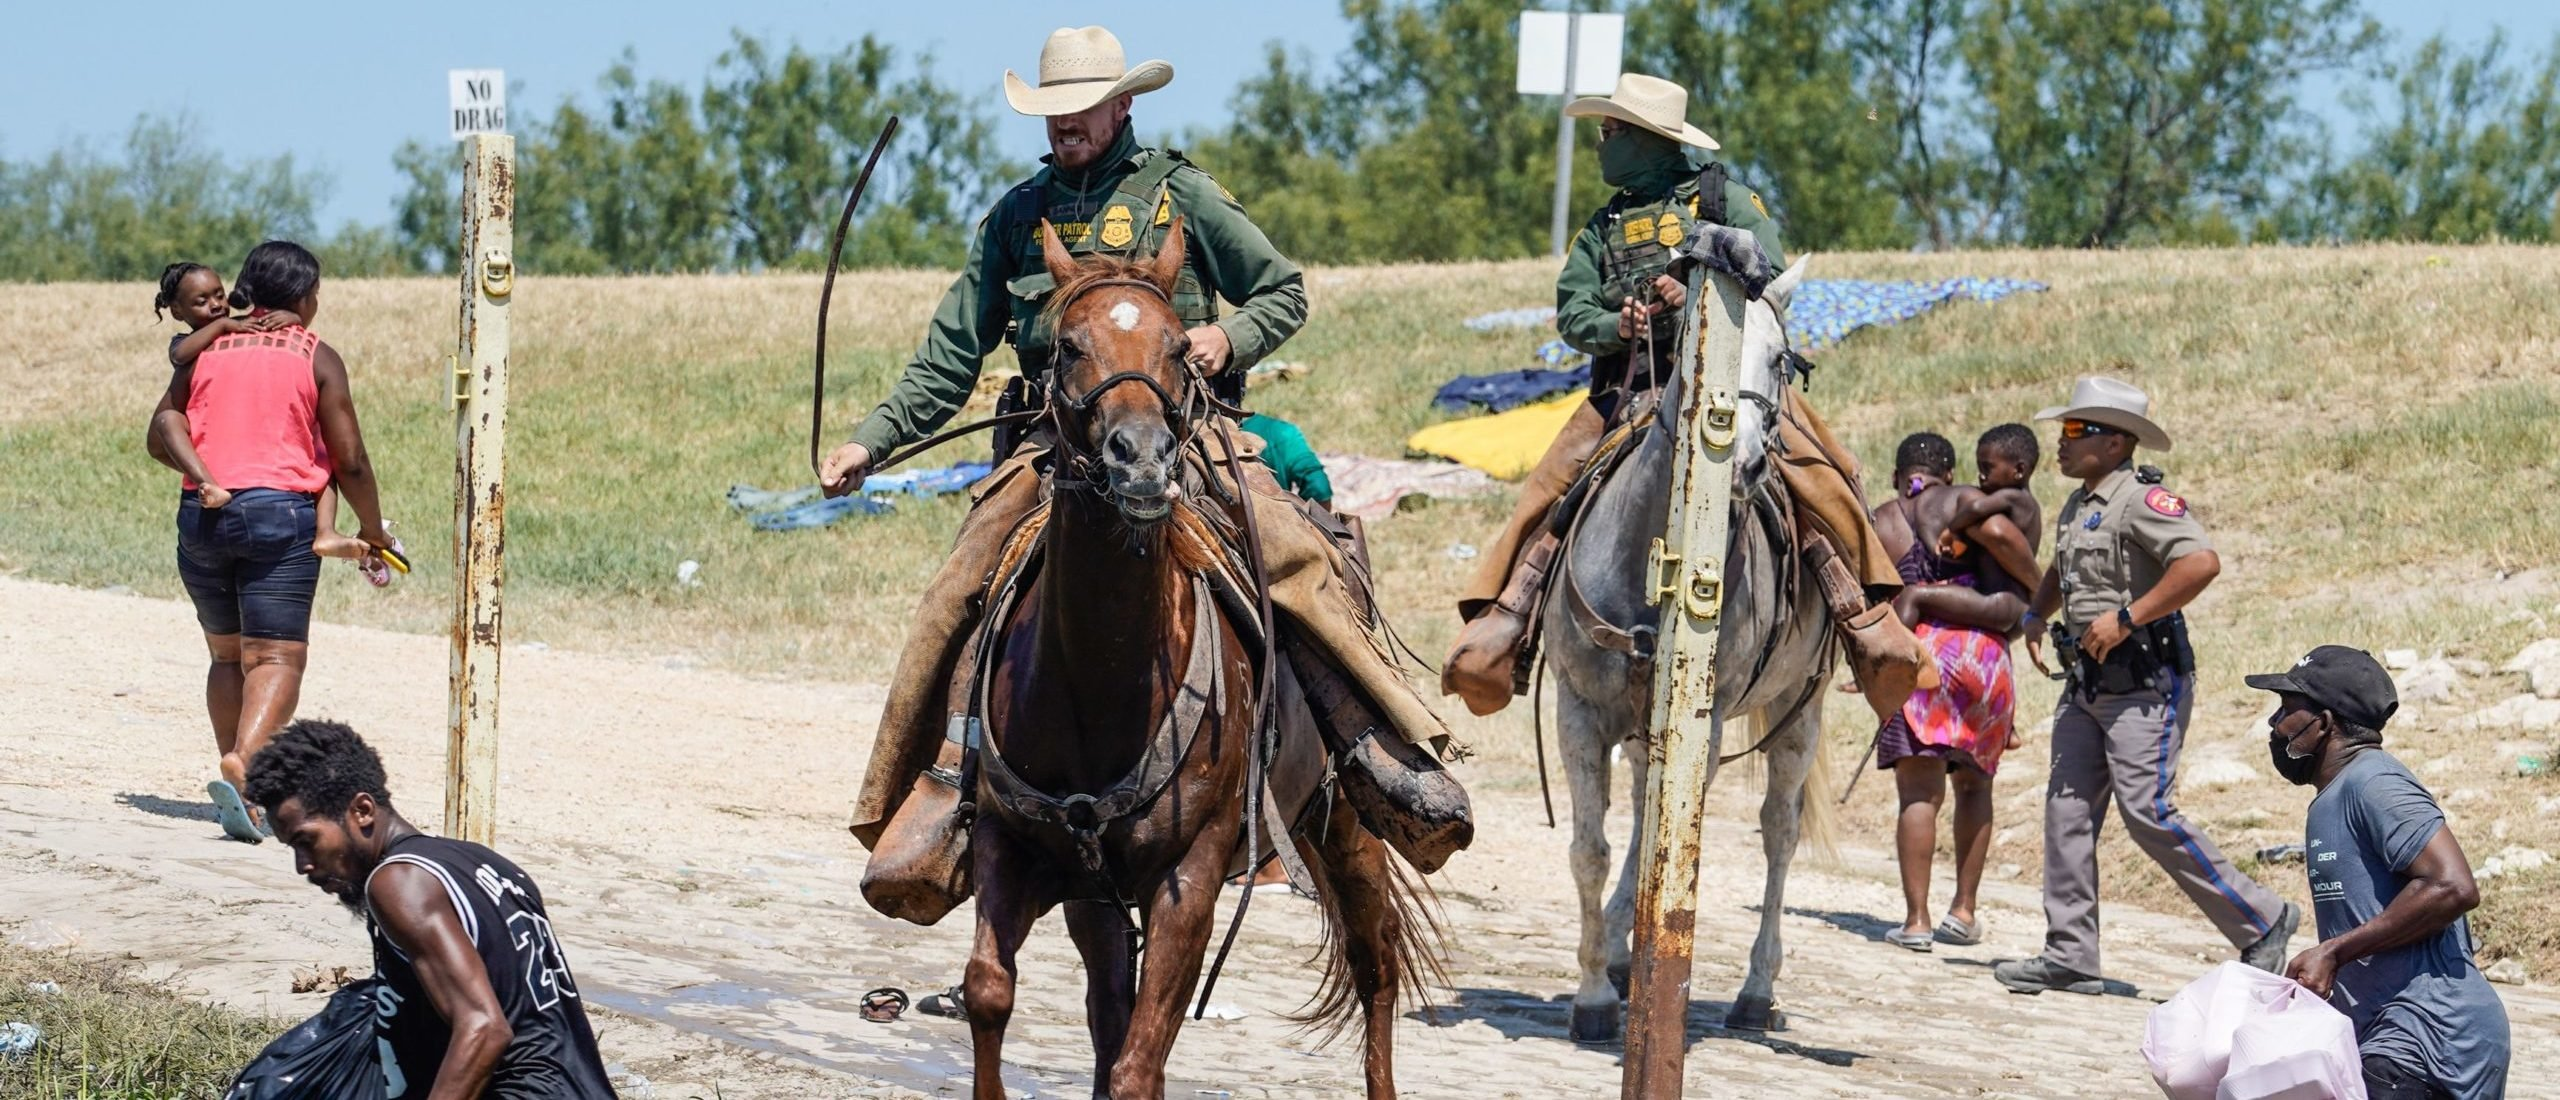 TOPSHOT - United States Border Patrol agents on horseback try to stop Haitian migrants from entering an encampment on the banks of the Rio Grande near the Acuna Del Rio International Bridge in Del Rio, Texas on September 19, 2021. - US law enforcement are attempting to close off crossing points along the Rio Grande river where migrants cross to get food and water, which is scarce in the encampment. The United States said Saturday it would ramp up deportation flights for thousands of migrants who flooded into the Texas border city of Del Rio, as authorities scramble to alleviate a burgeoning crisis for President Joe Biden's administration. (Photo by PAUL RATJE / AFP) (Photo by PAUL RATJE/AFP via Getty Images)